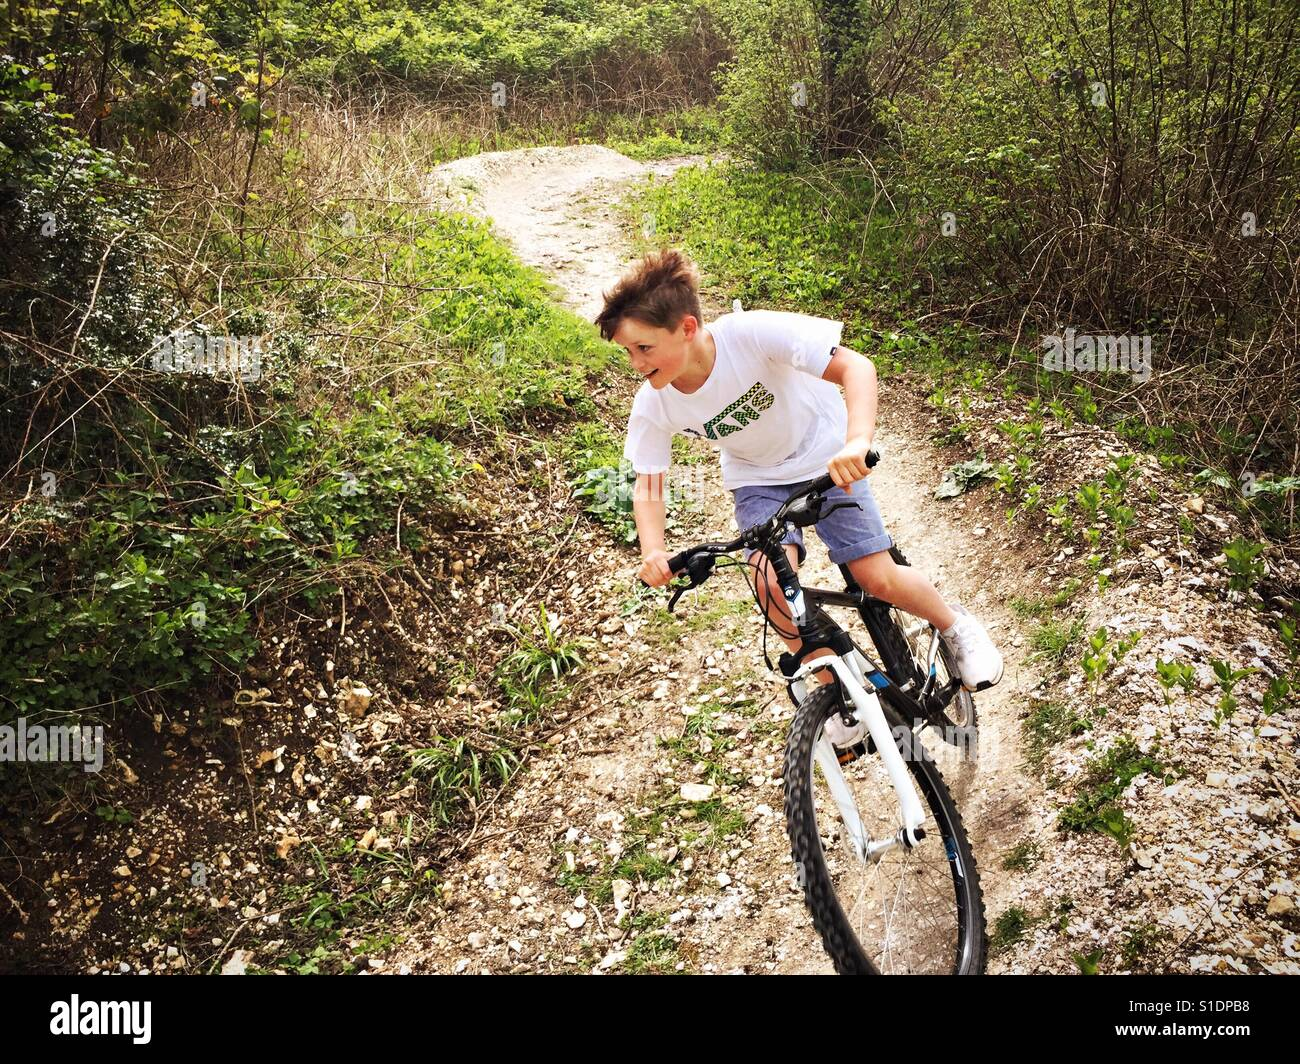 An 11-year-old boy rides his mountain bike down a trail in woodland